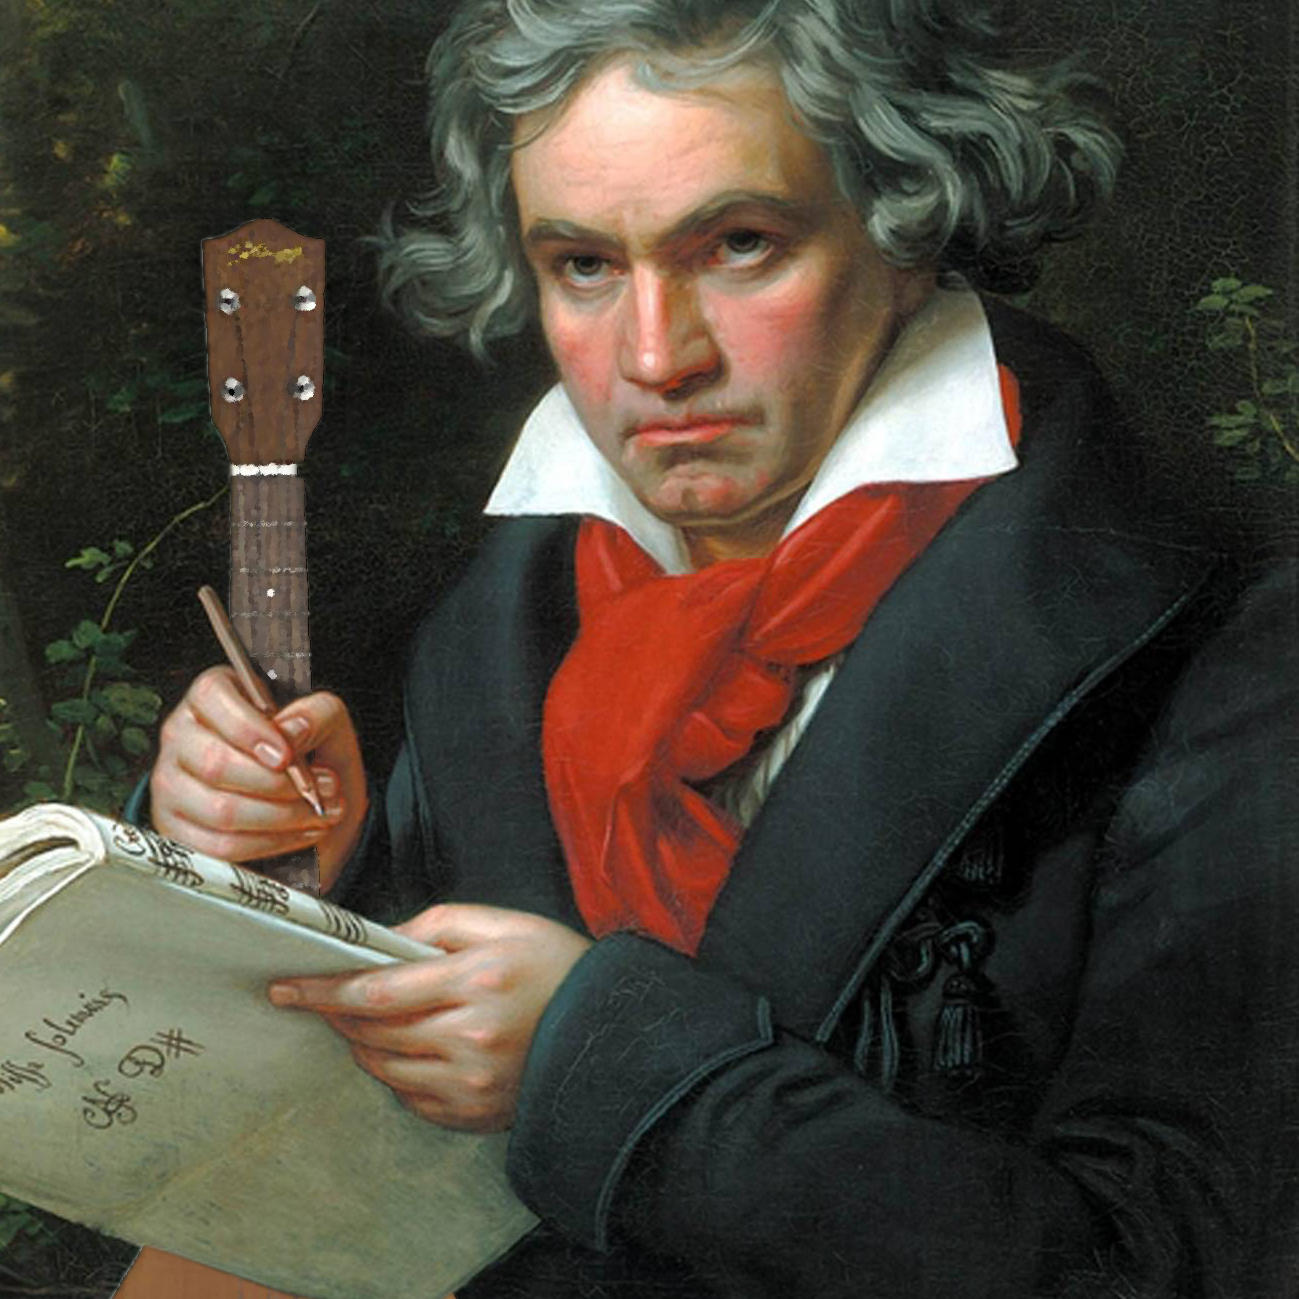 039 beethoven ukulele photoshop photoshop know your meme,Ukulele Meme